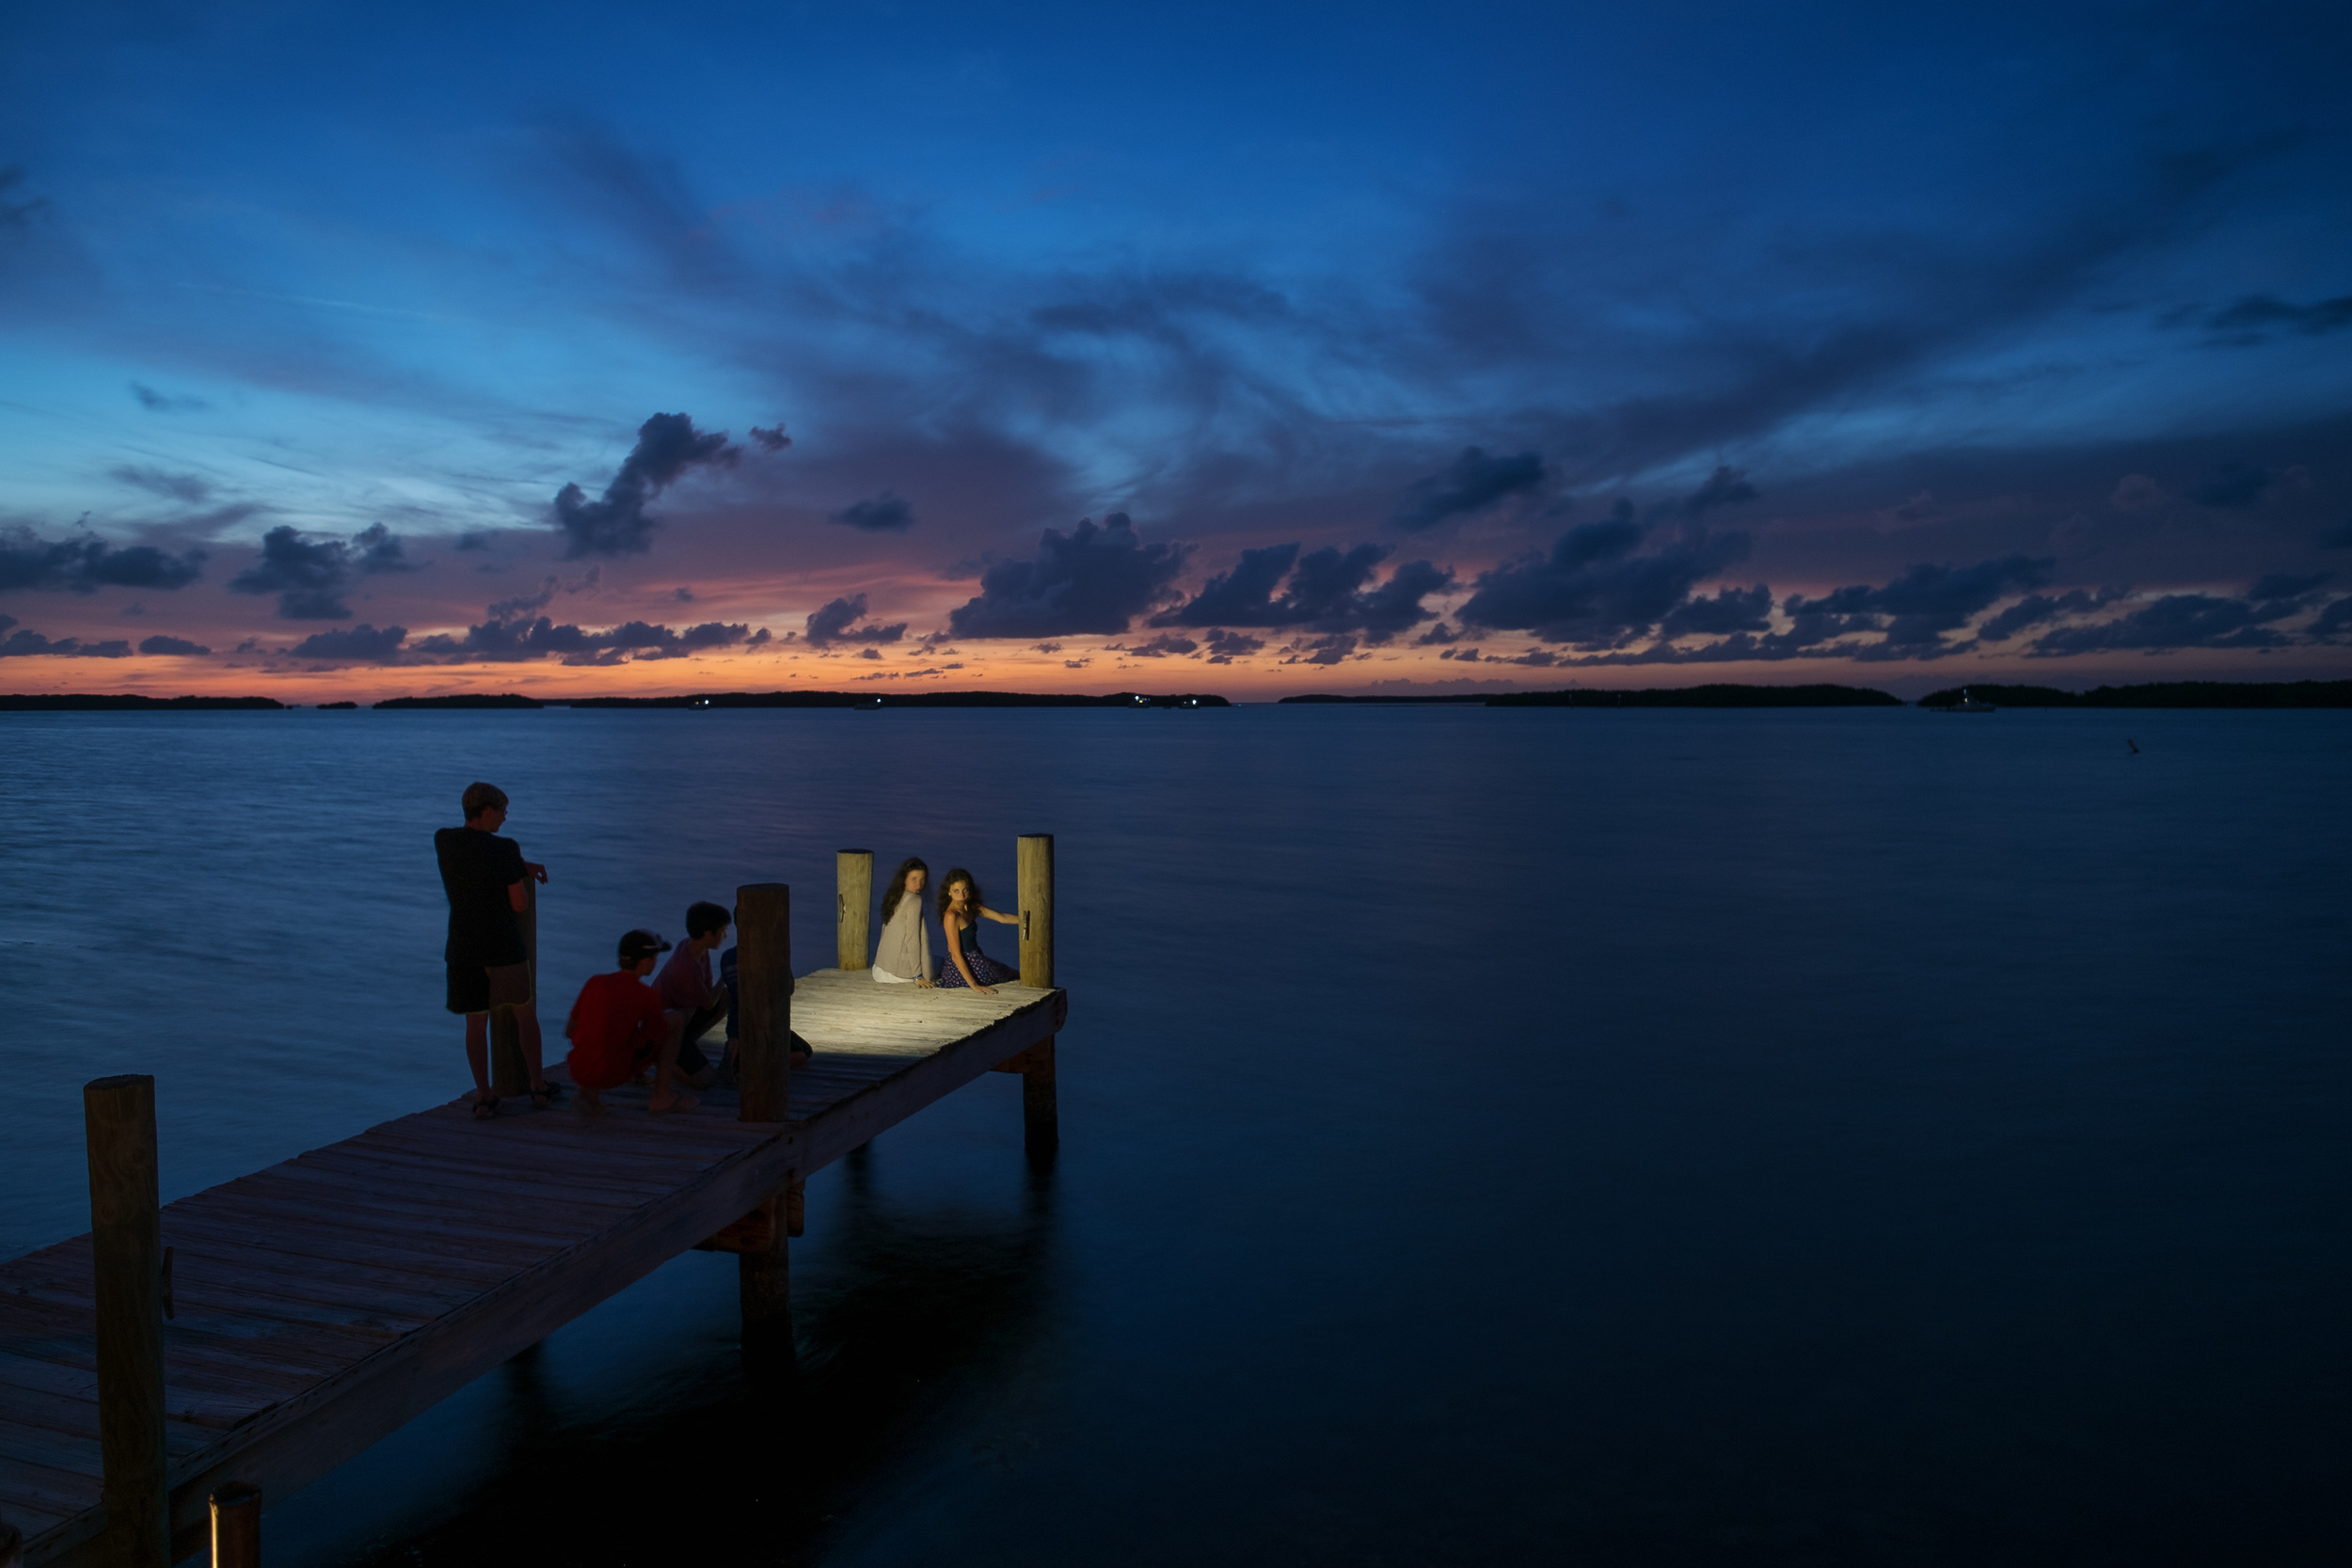 """Sunset snapshot""  April, 2015 Islamorada, Florida Keys Fujifilm XPro1, 14mm, f/4.0, 4.3, ISO 200"